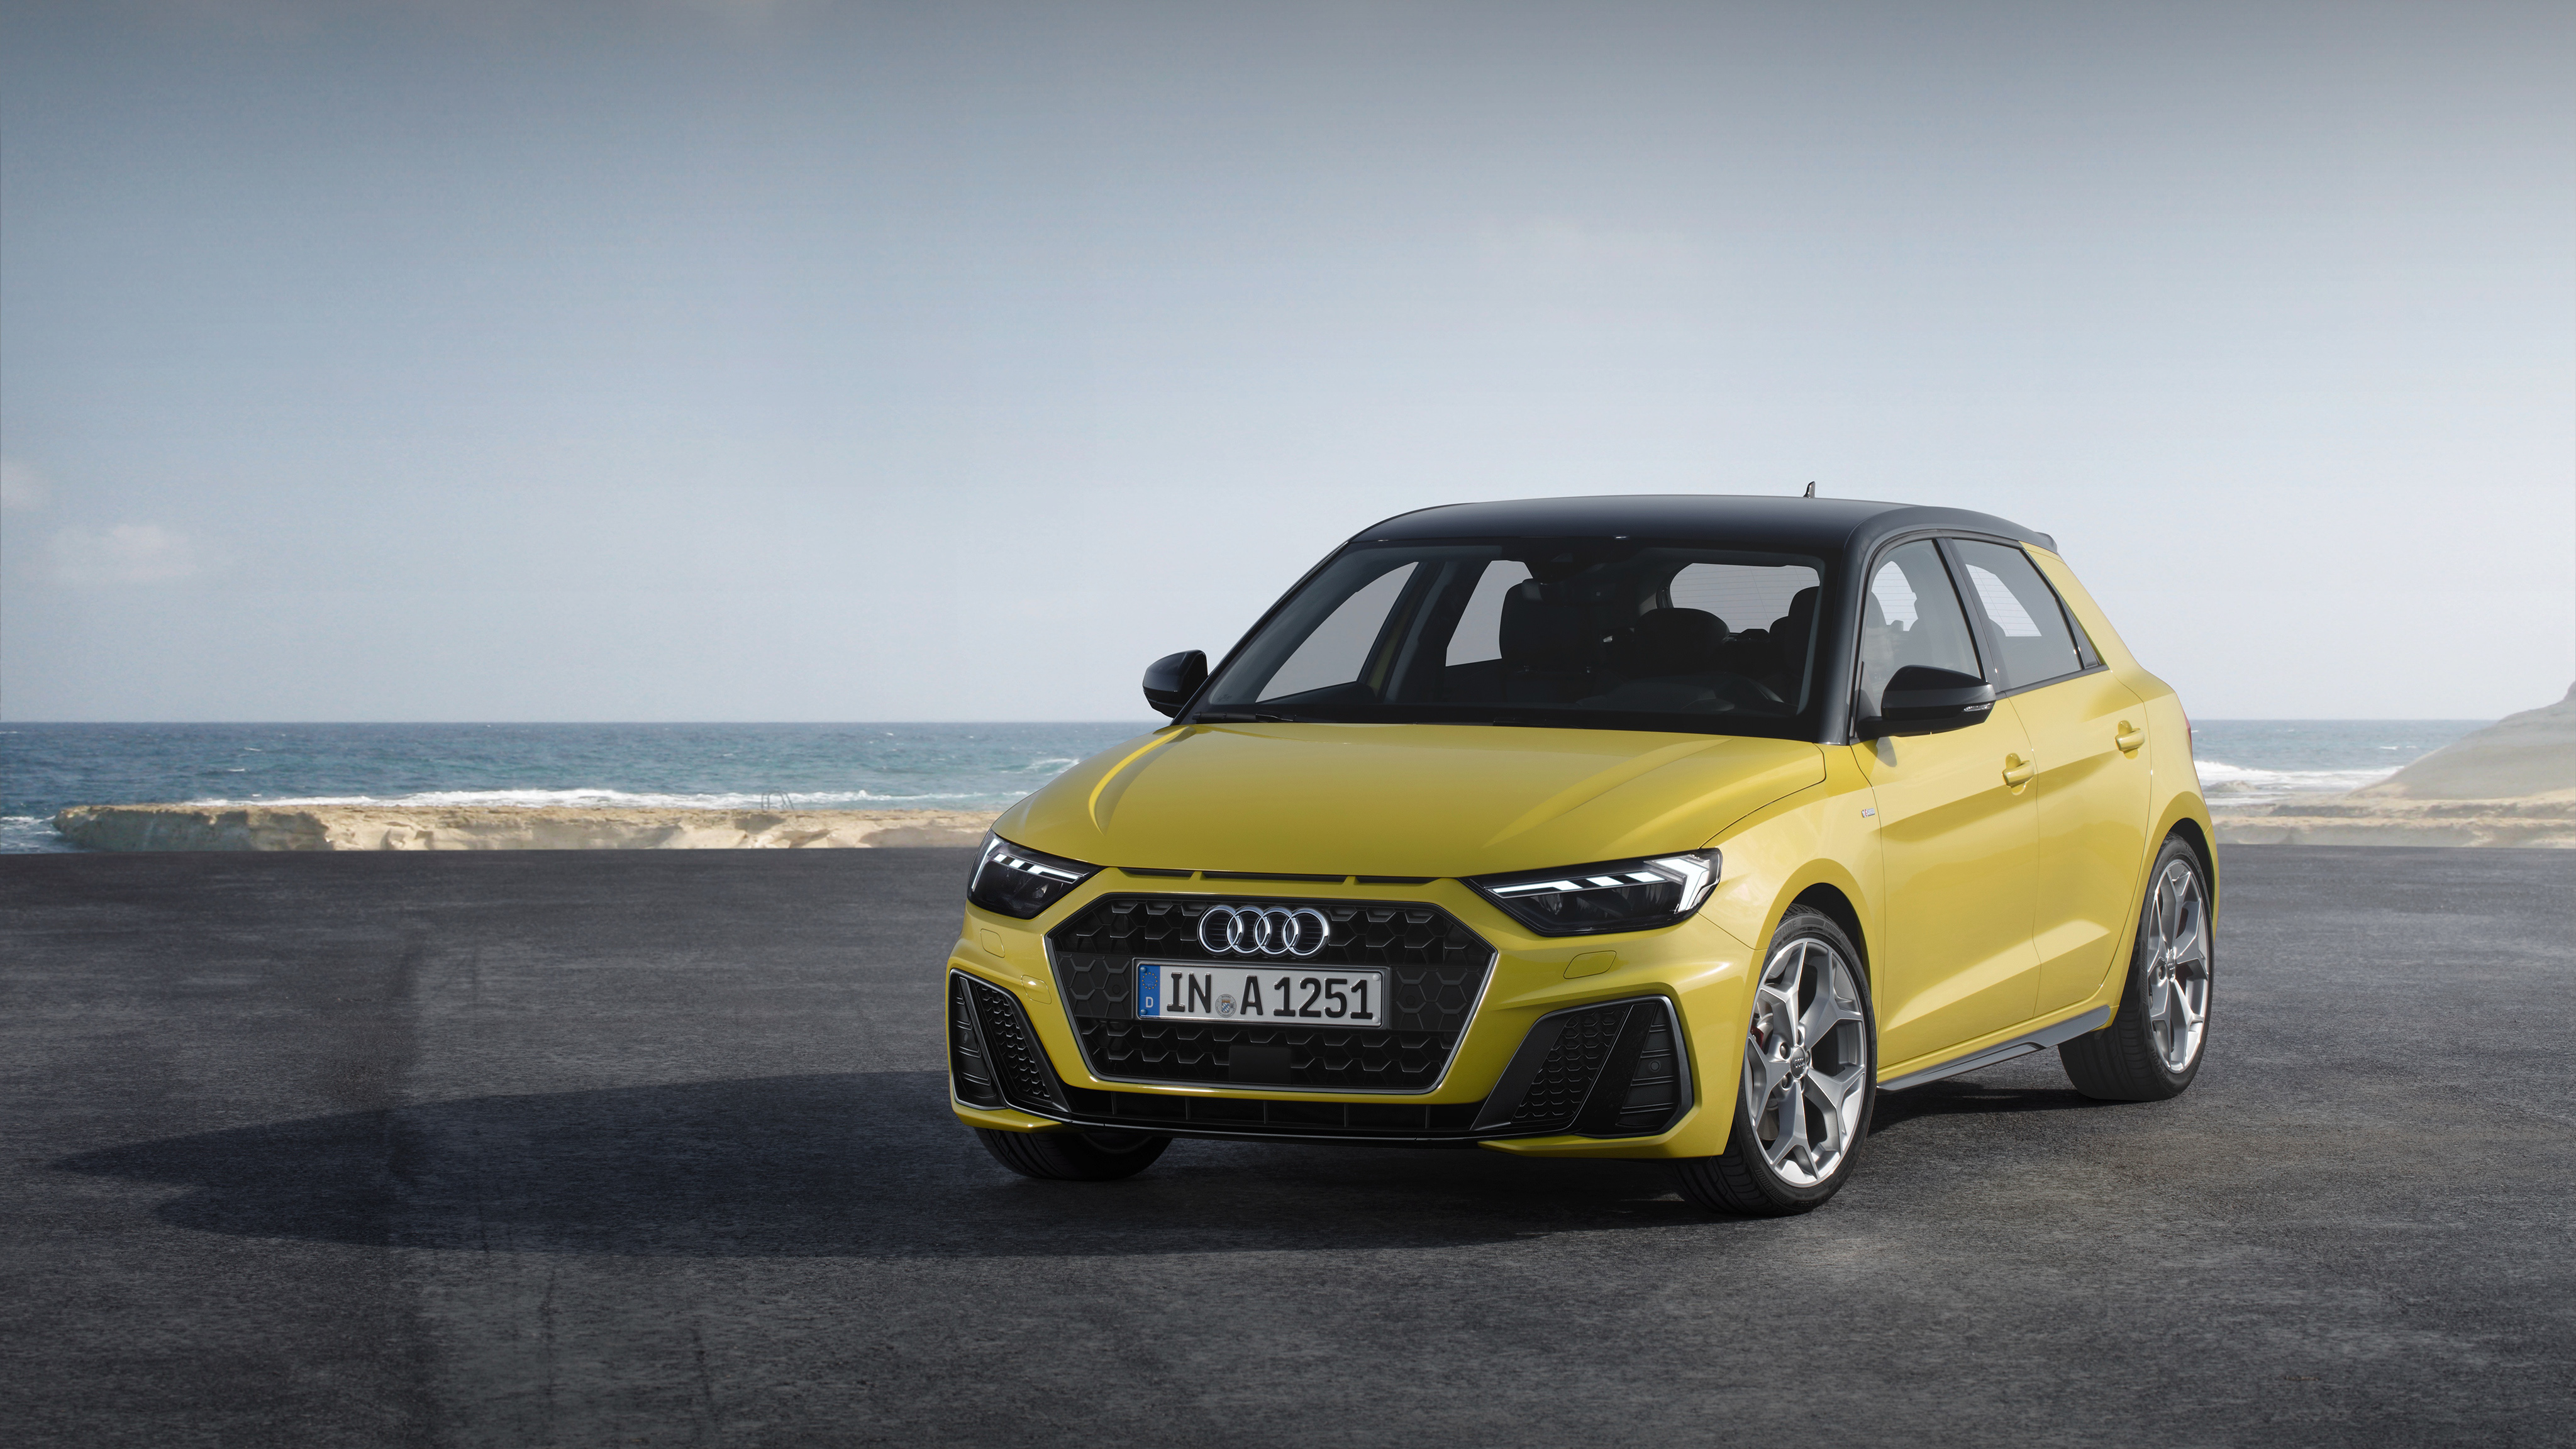 4096x2304 - Audi A1 Wallpapers 3